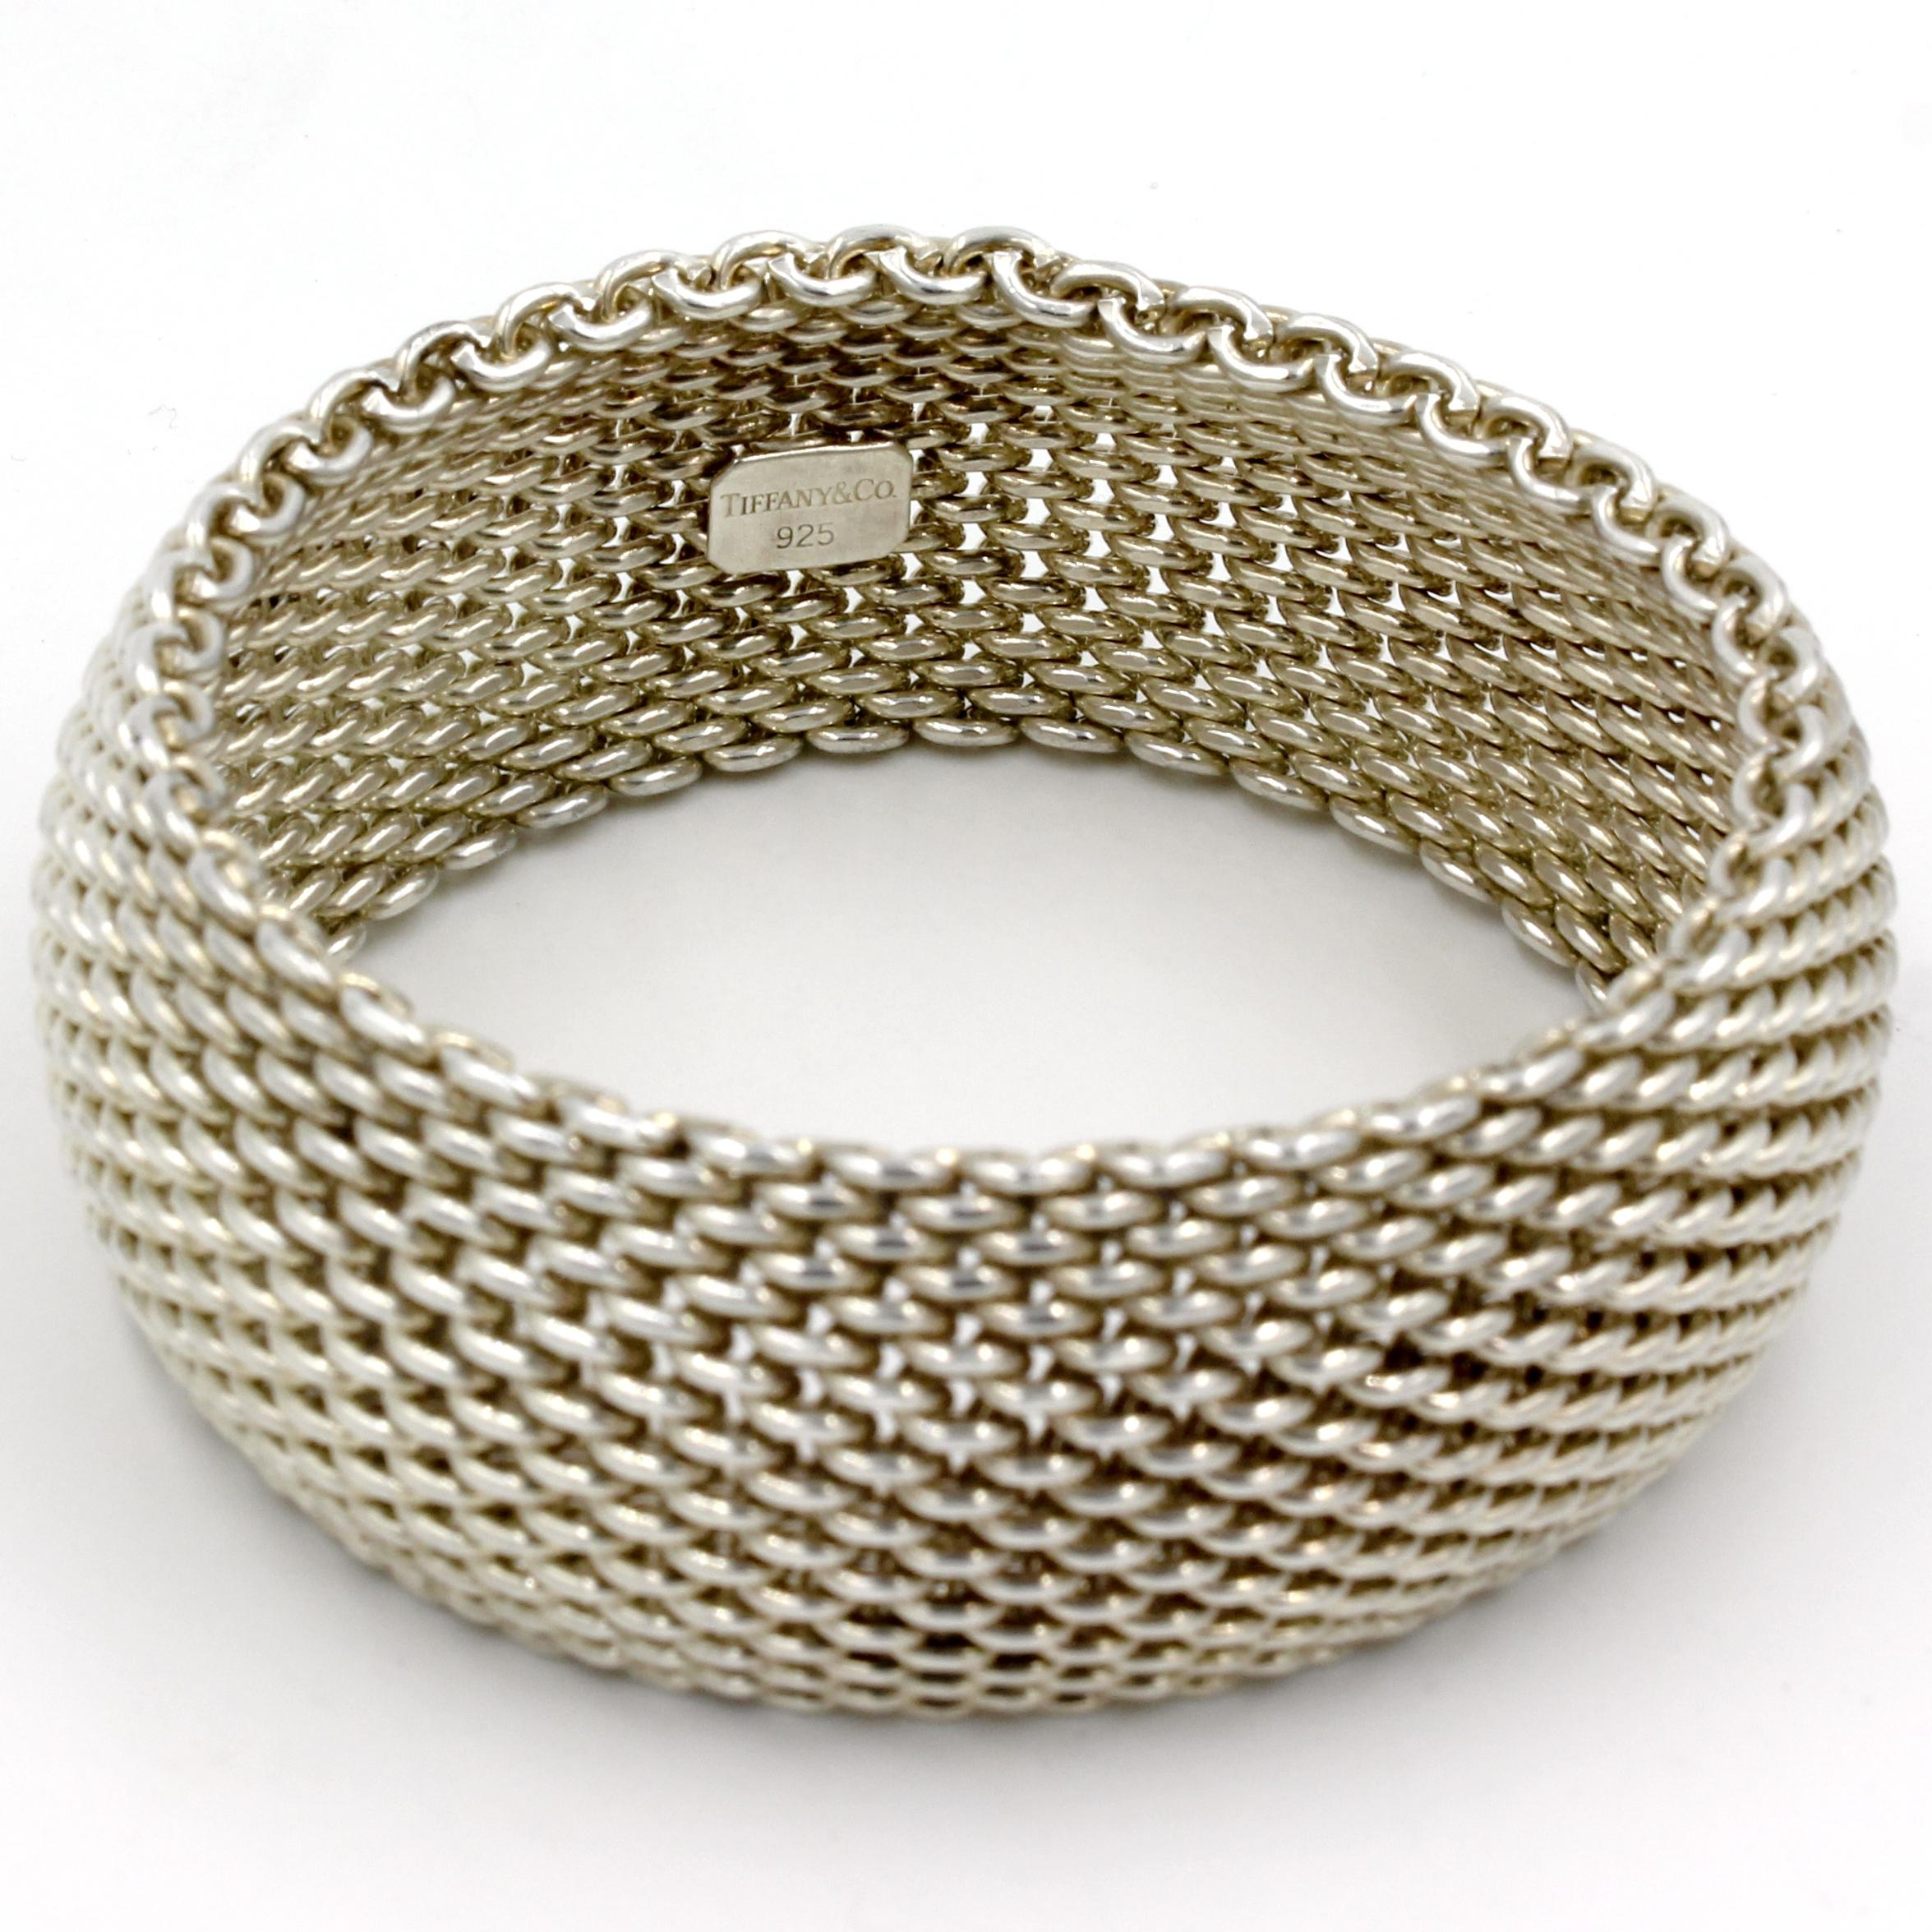 Tiffany & Co. Somerset Wide Bangle Mesh Bracelet in Sterling Silver -  Tradesy